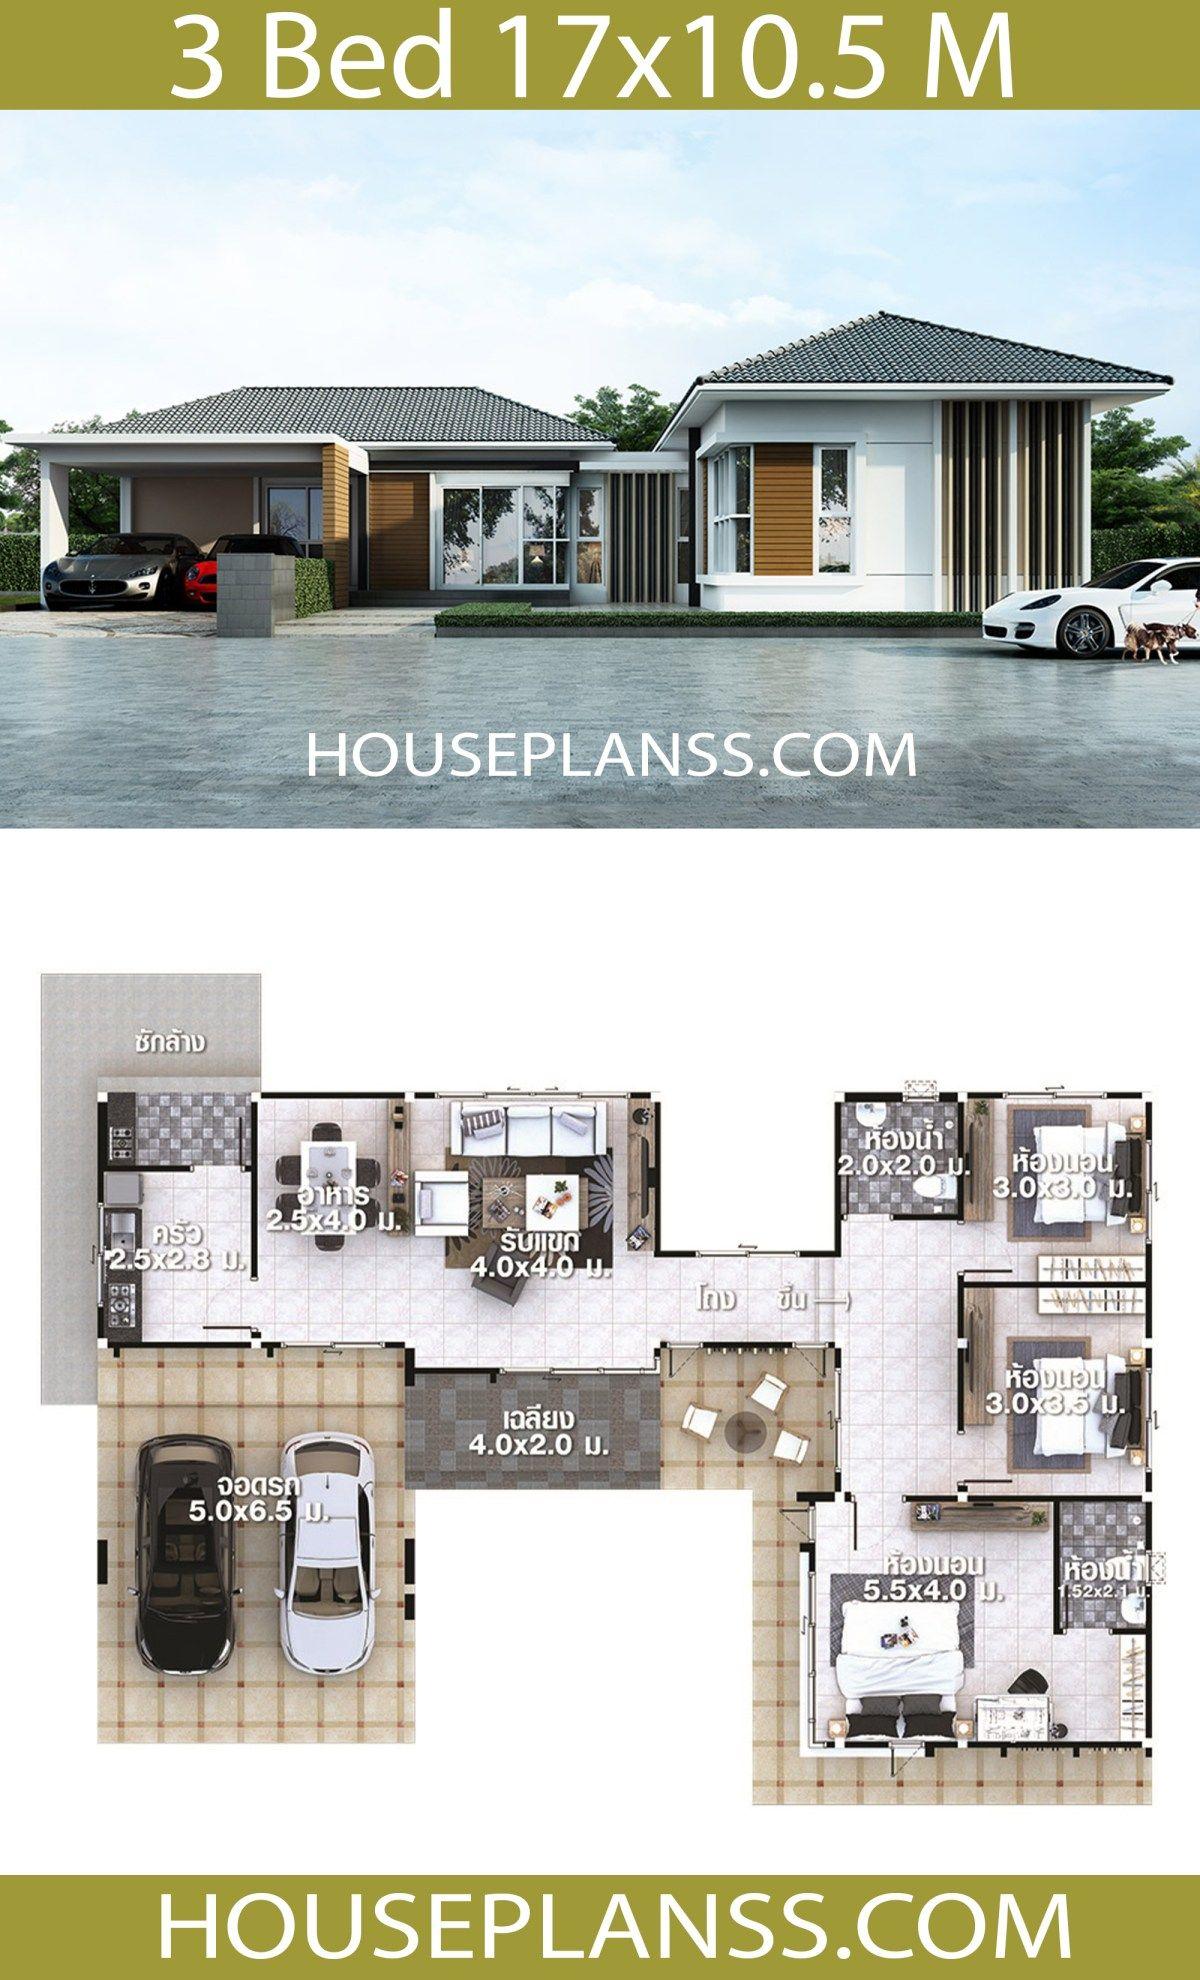 House Plans Idea 17x10 5 With 3 Bedrooms House Plans Sam Beautiful House Plans House Plans My House Plans